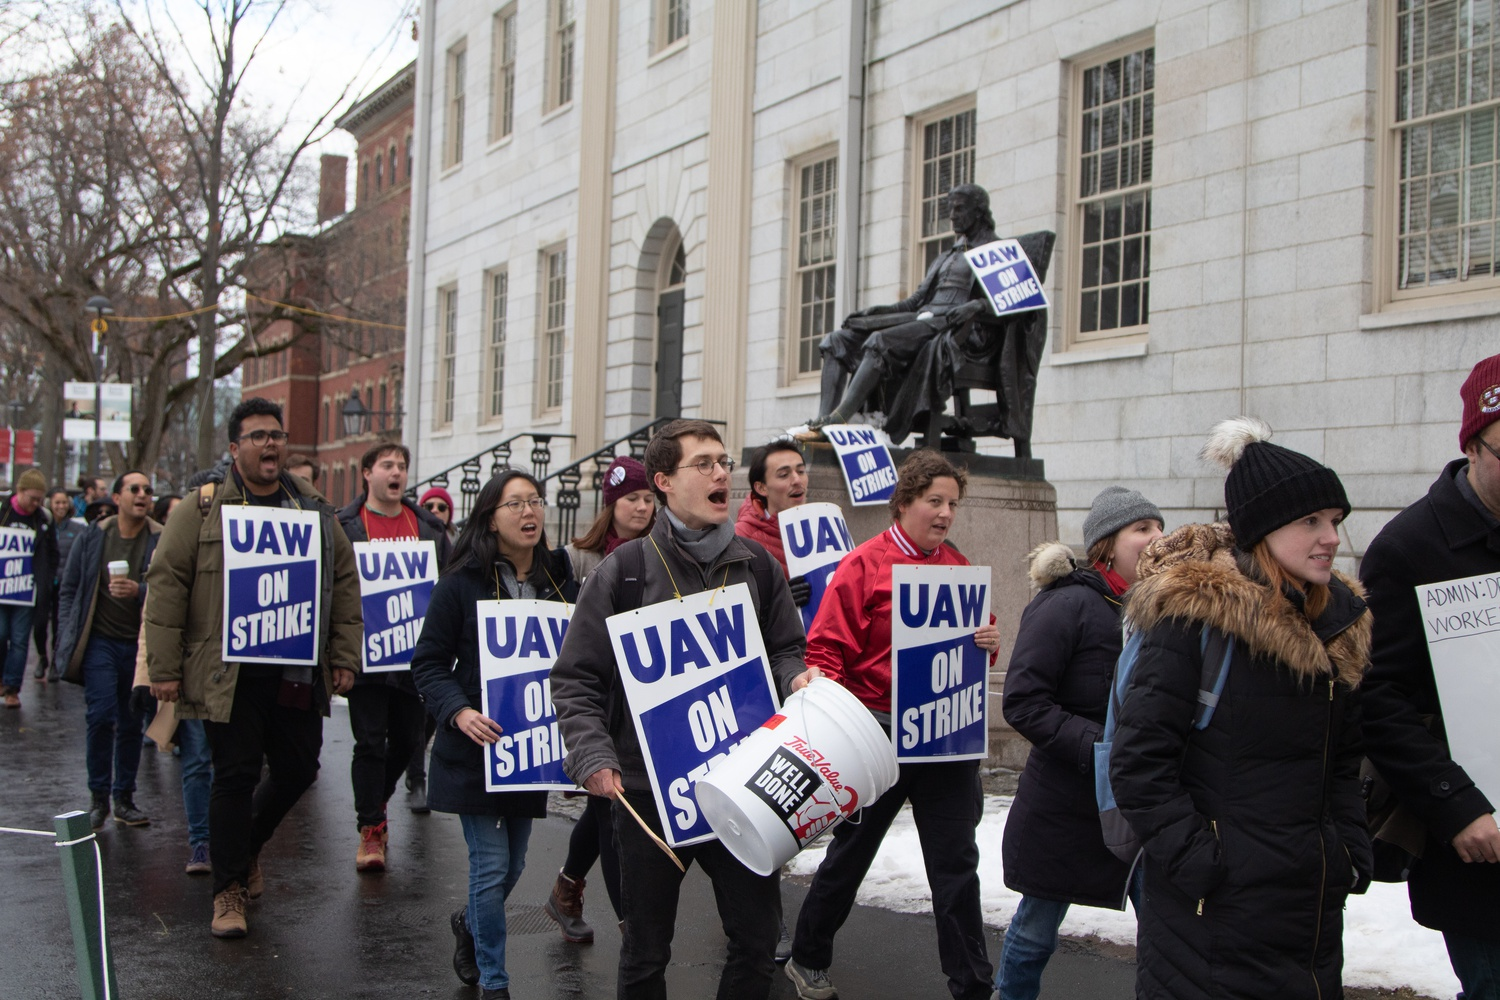 Members of Harvard Graduate Students Union-United Automobile Workers marched past the John Harvard statue bearing buckets and UAW signs.